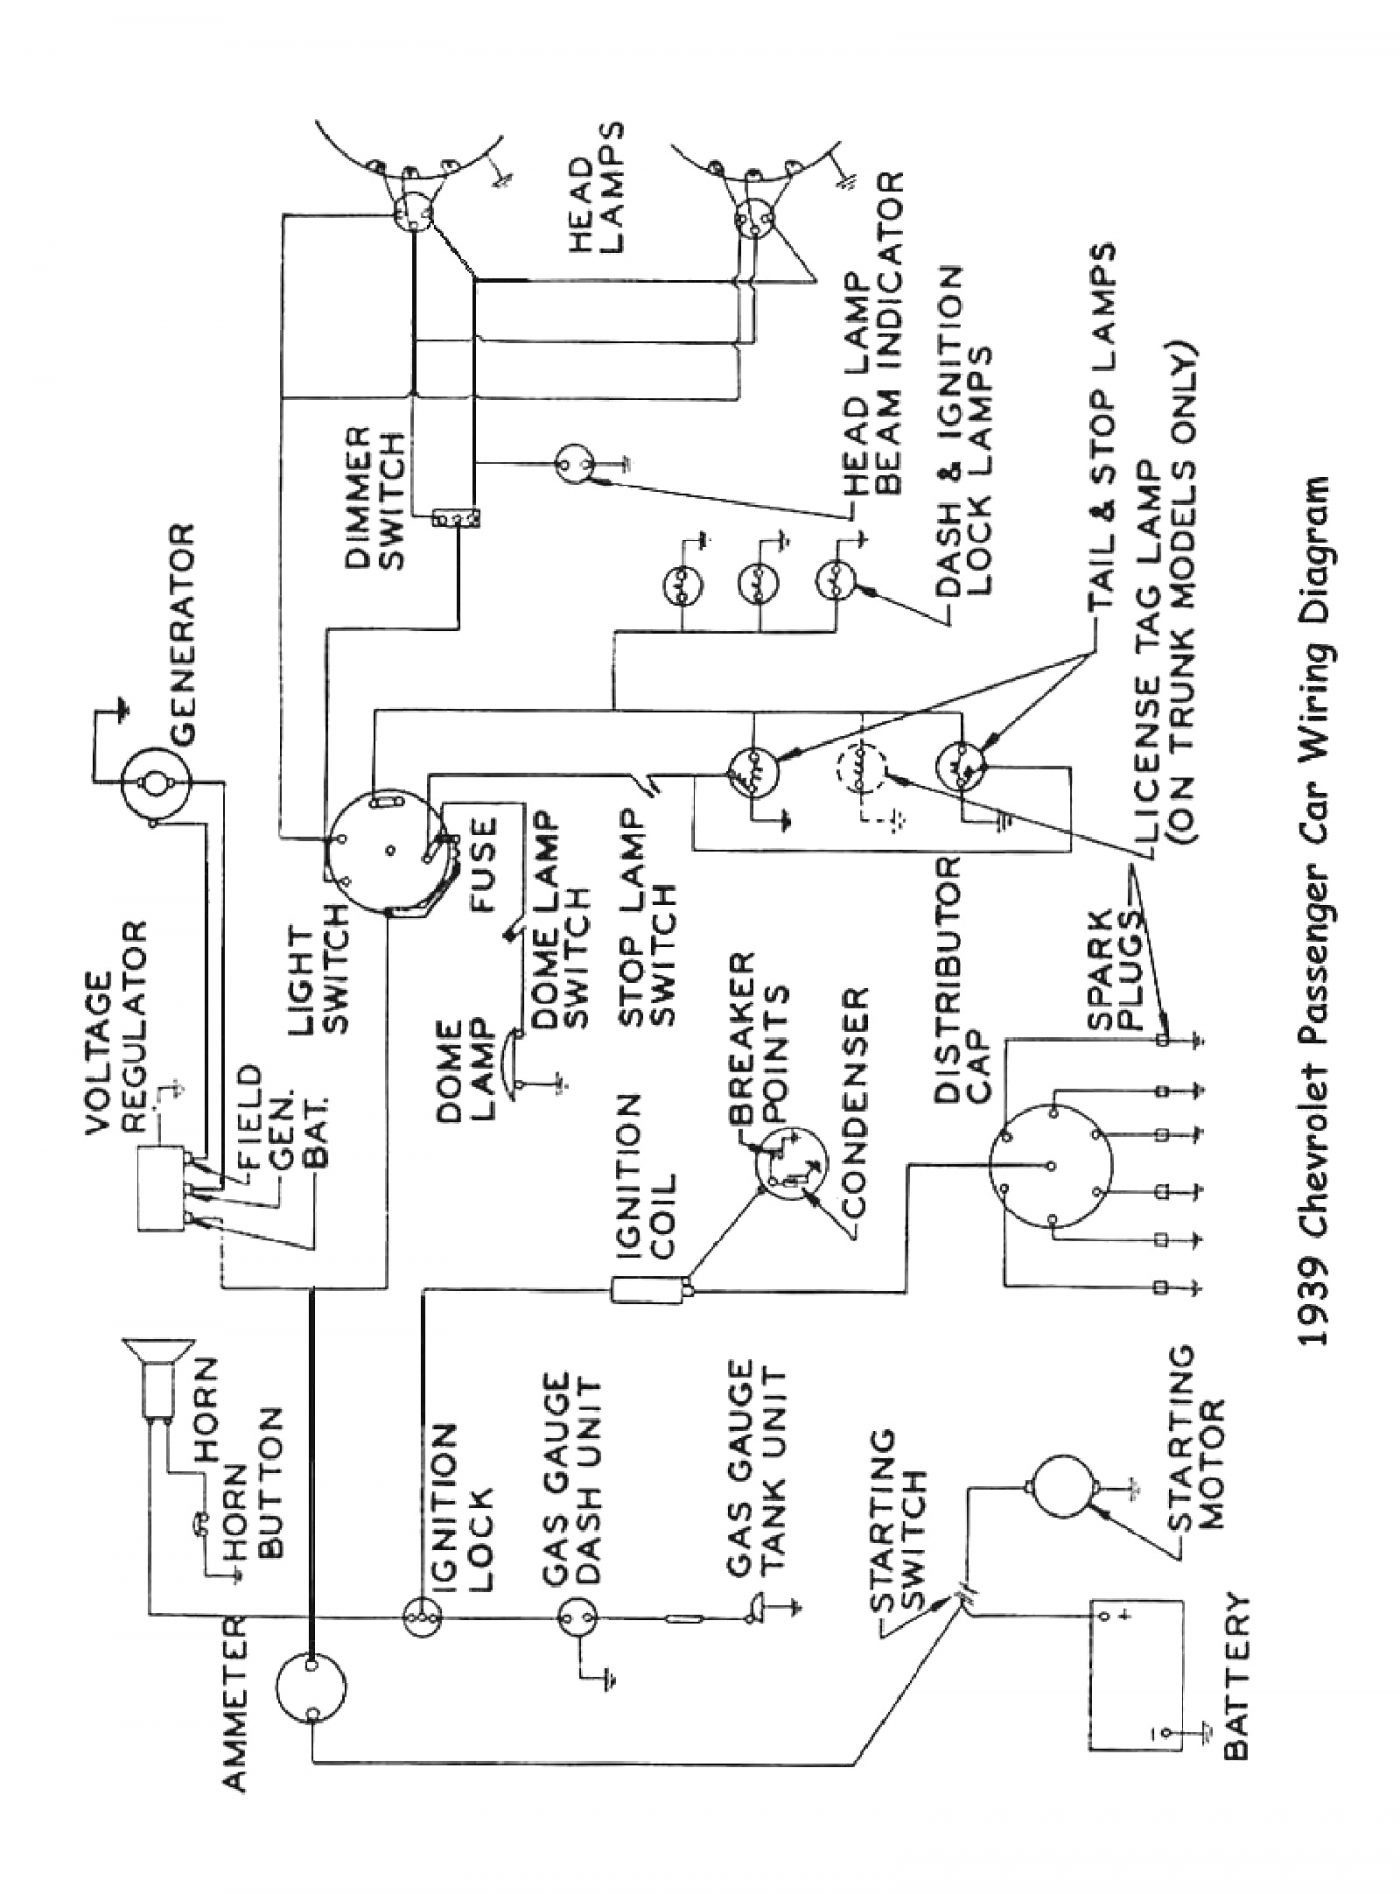 Chevy Western Snow Plow Wiring Diagram Archive Of Automotive Meyer 2003 Silverado Page 5 And Rh Rivcas Org